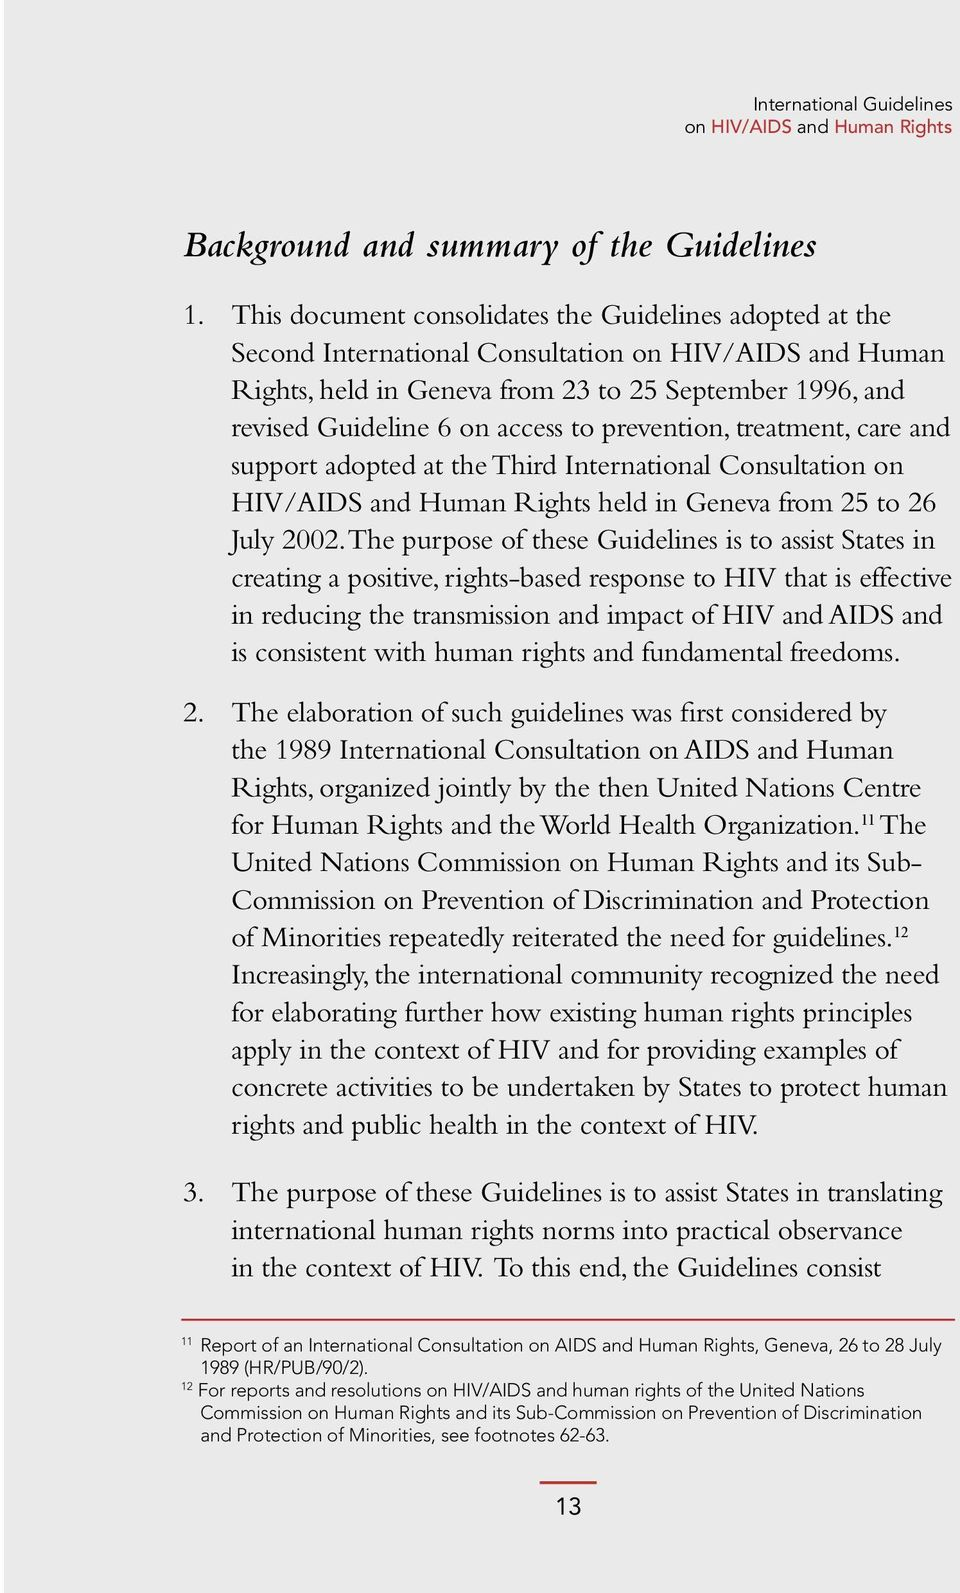 to prevention, treatment, care and support adopted at the Third International Consultation on HIV/AIDS and Human Rights held in Geneva from 25 to 26 July 2002.